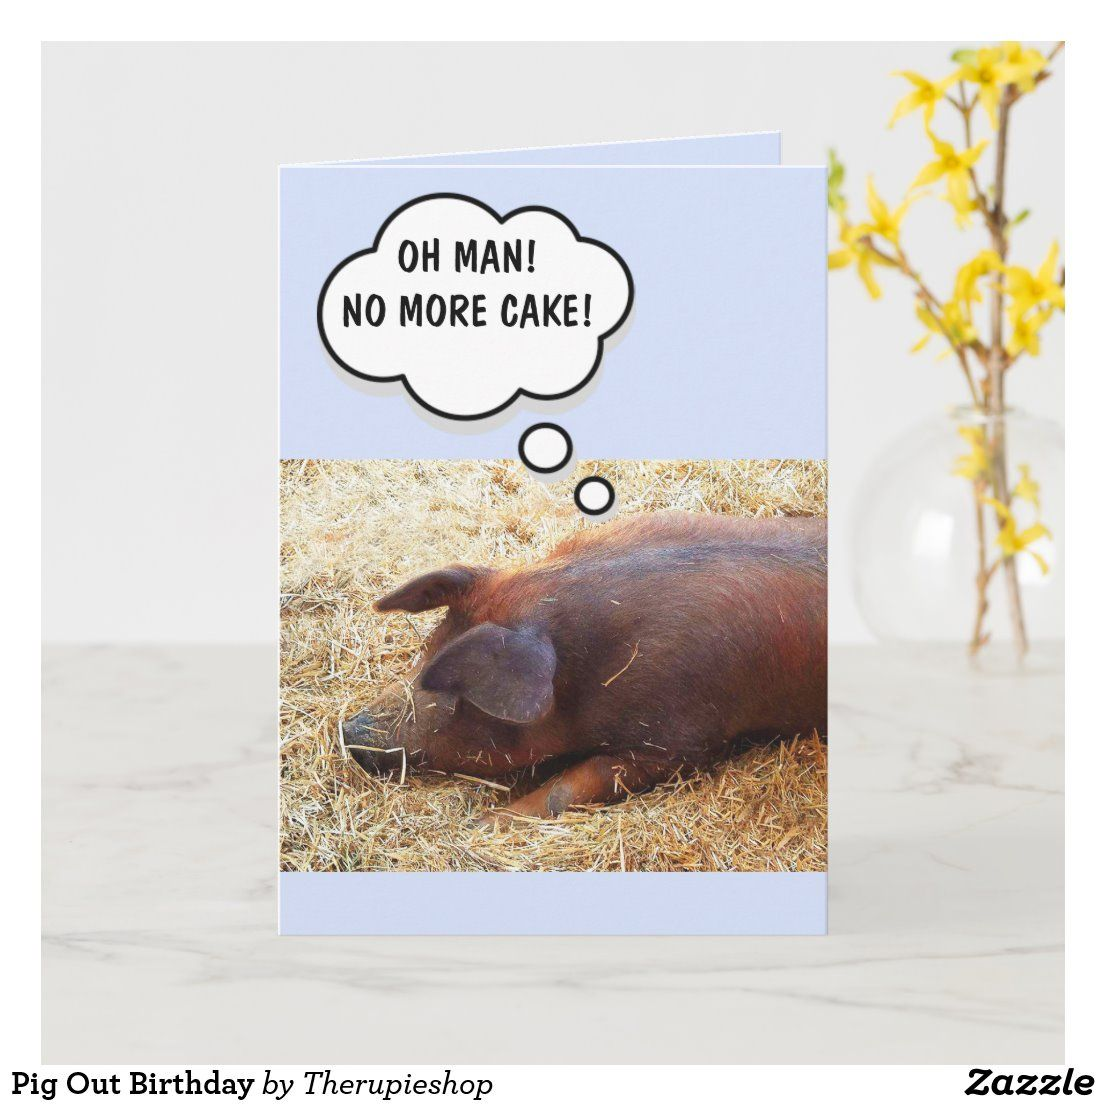 Pig Out Birthday Card   Zazzle.com in 2020   Funny ...